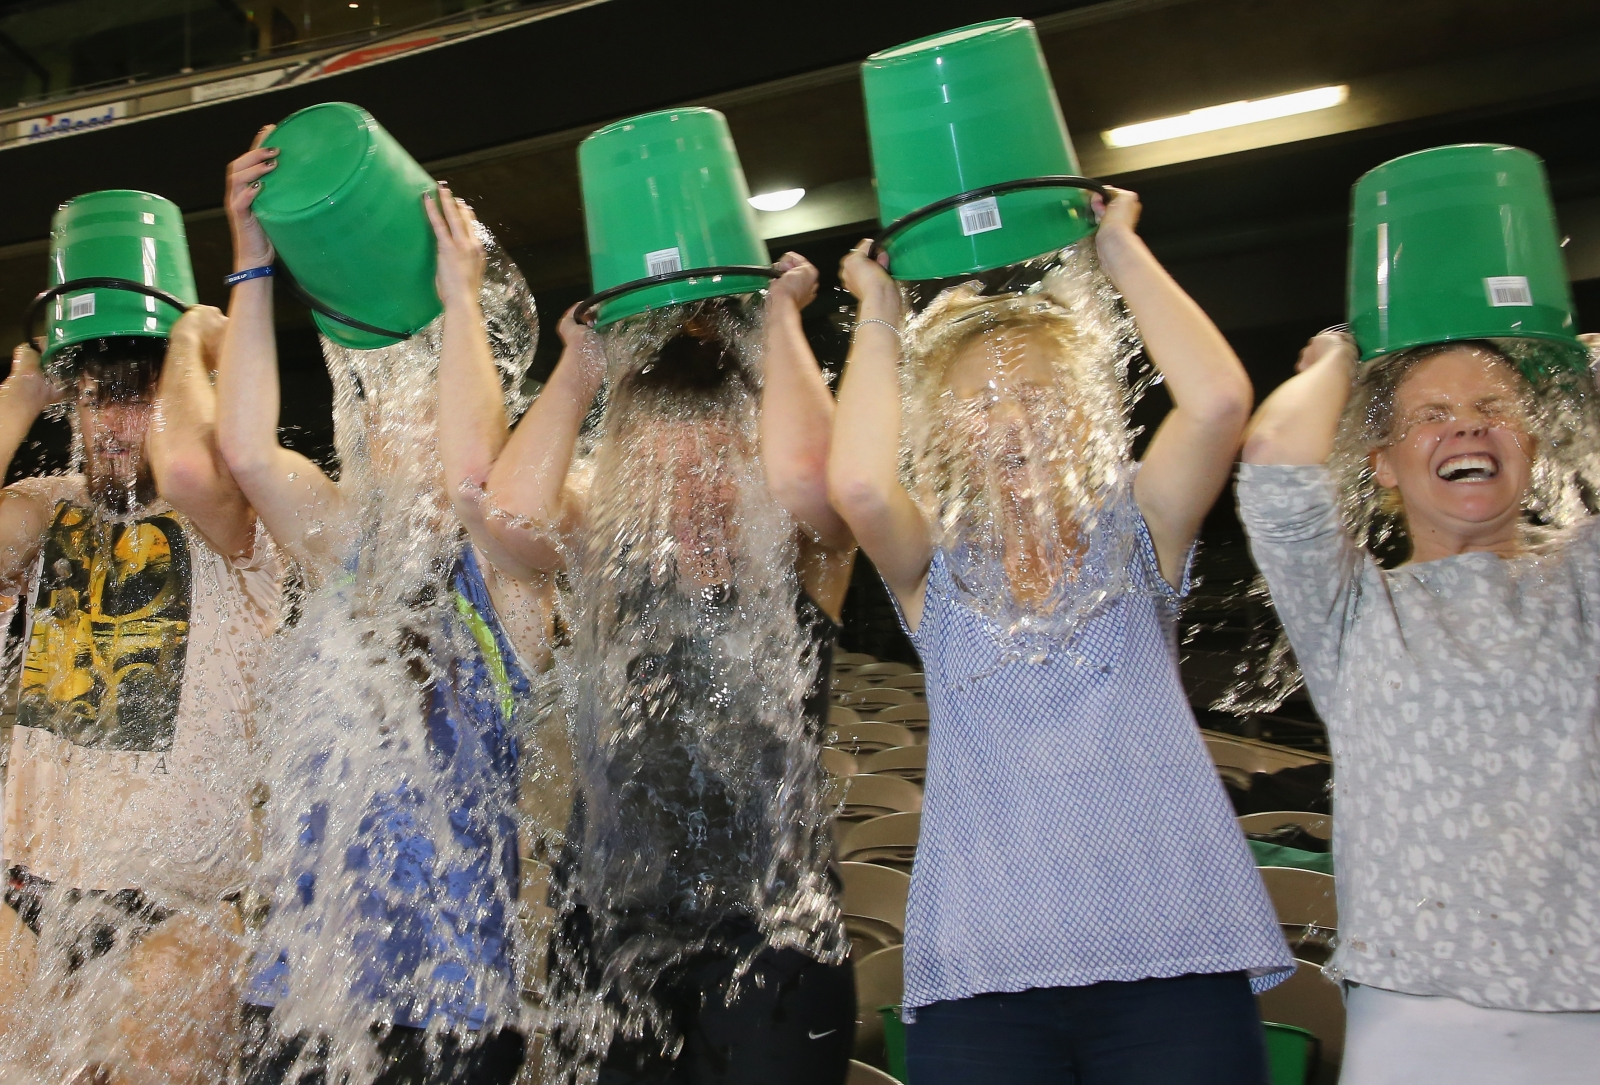 Ice Bucket Challenge Rules Explained: How Challenge Helps ...